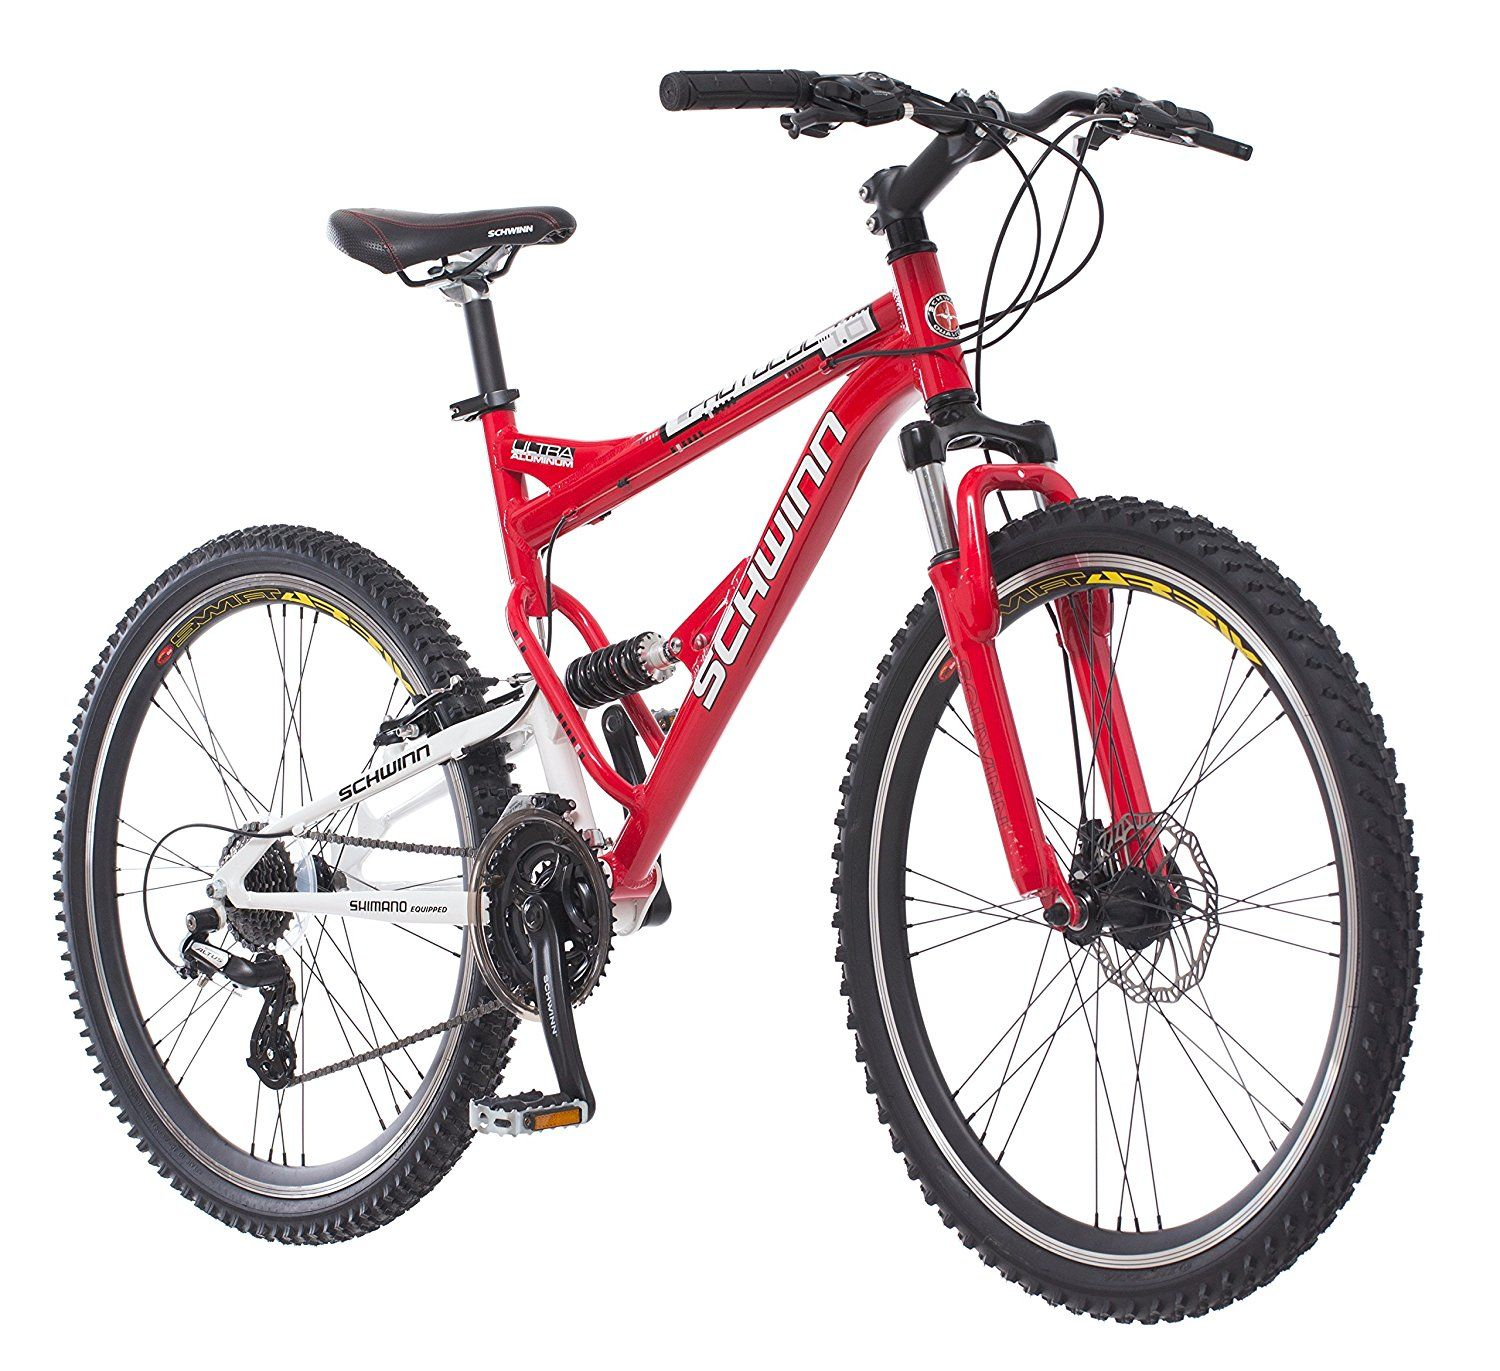 bde18a706 The 10 Best Mountain Bikes Under 600 Dollars - Ultimate Guide 2019 ...